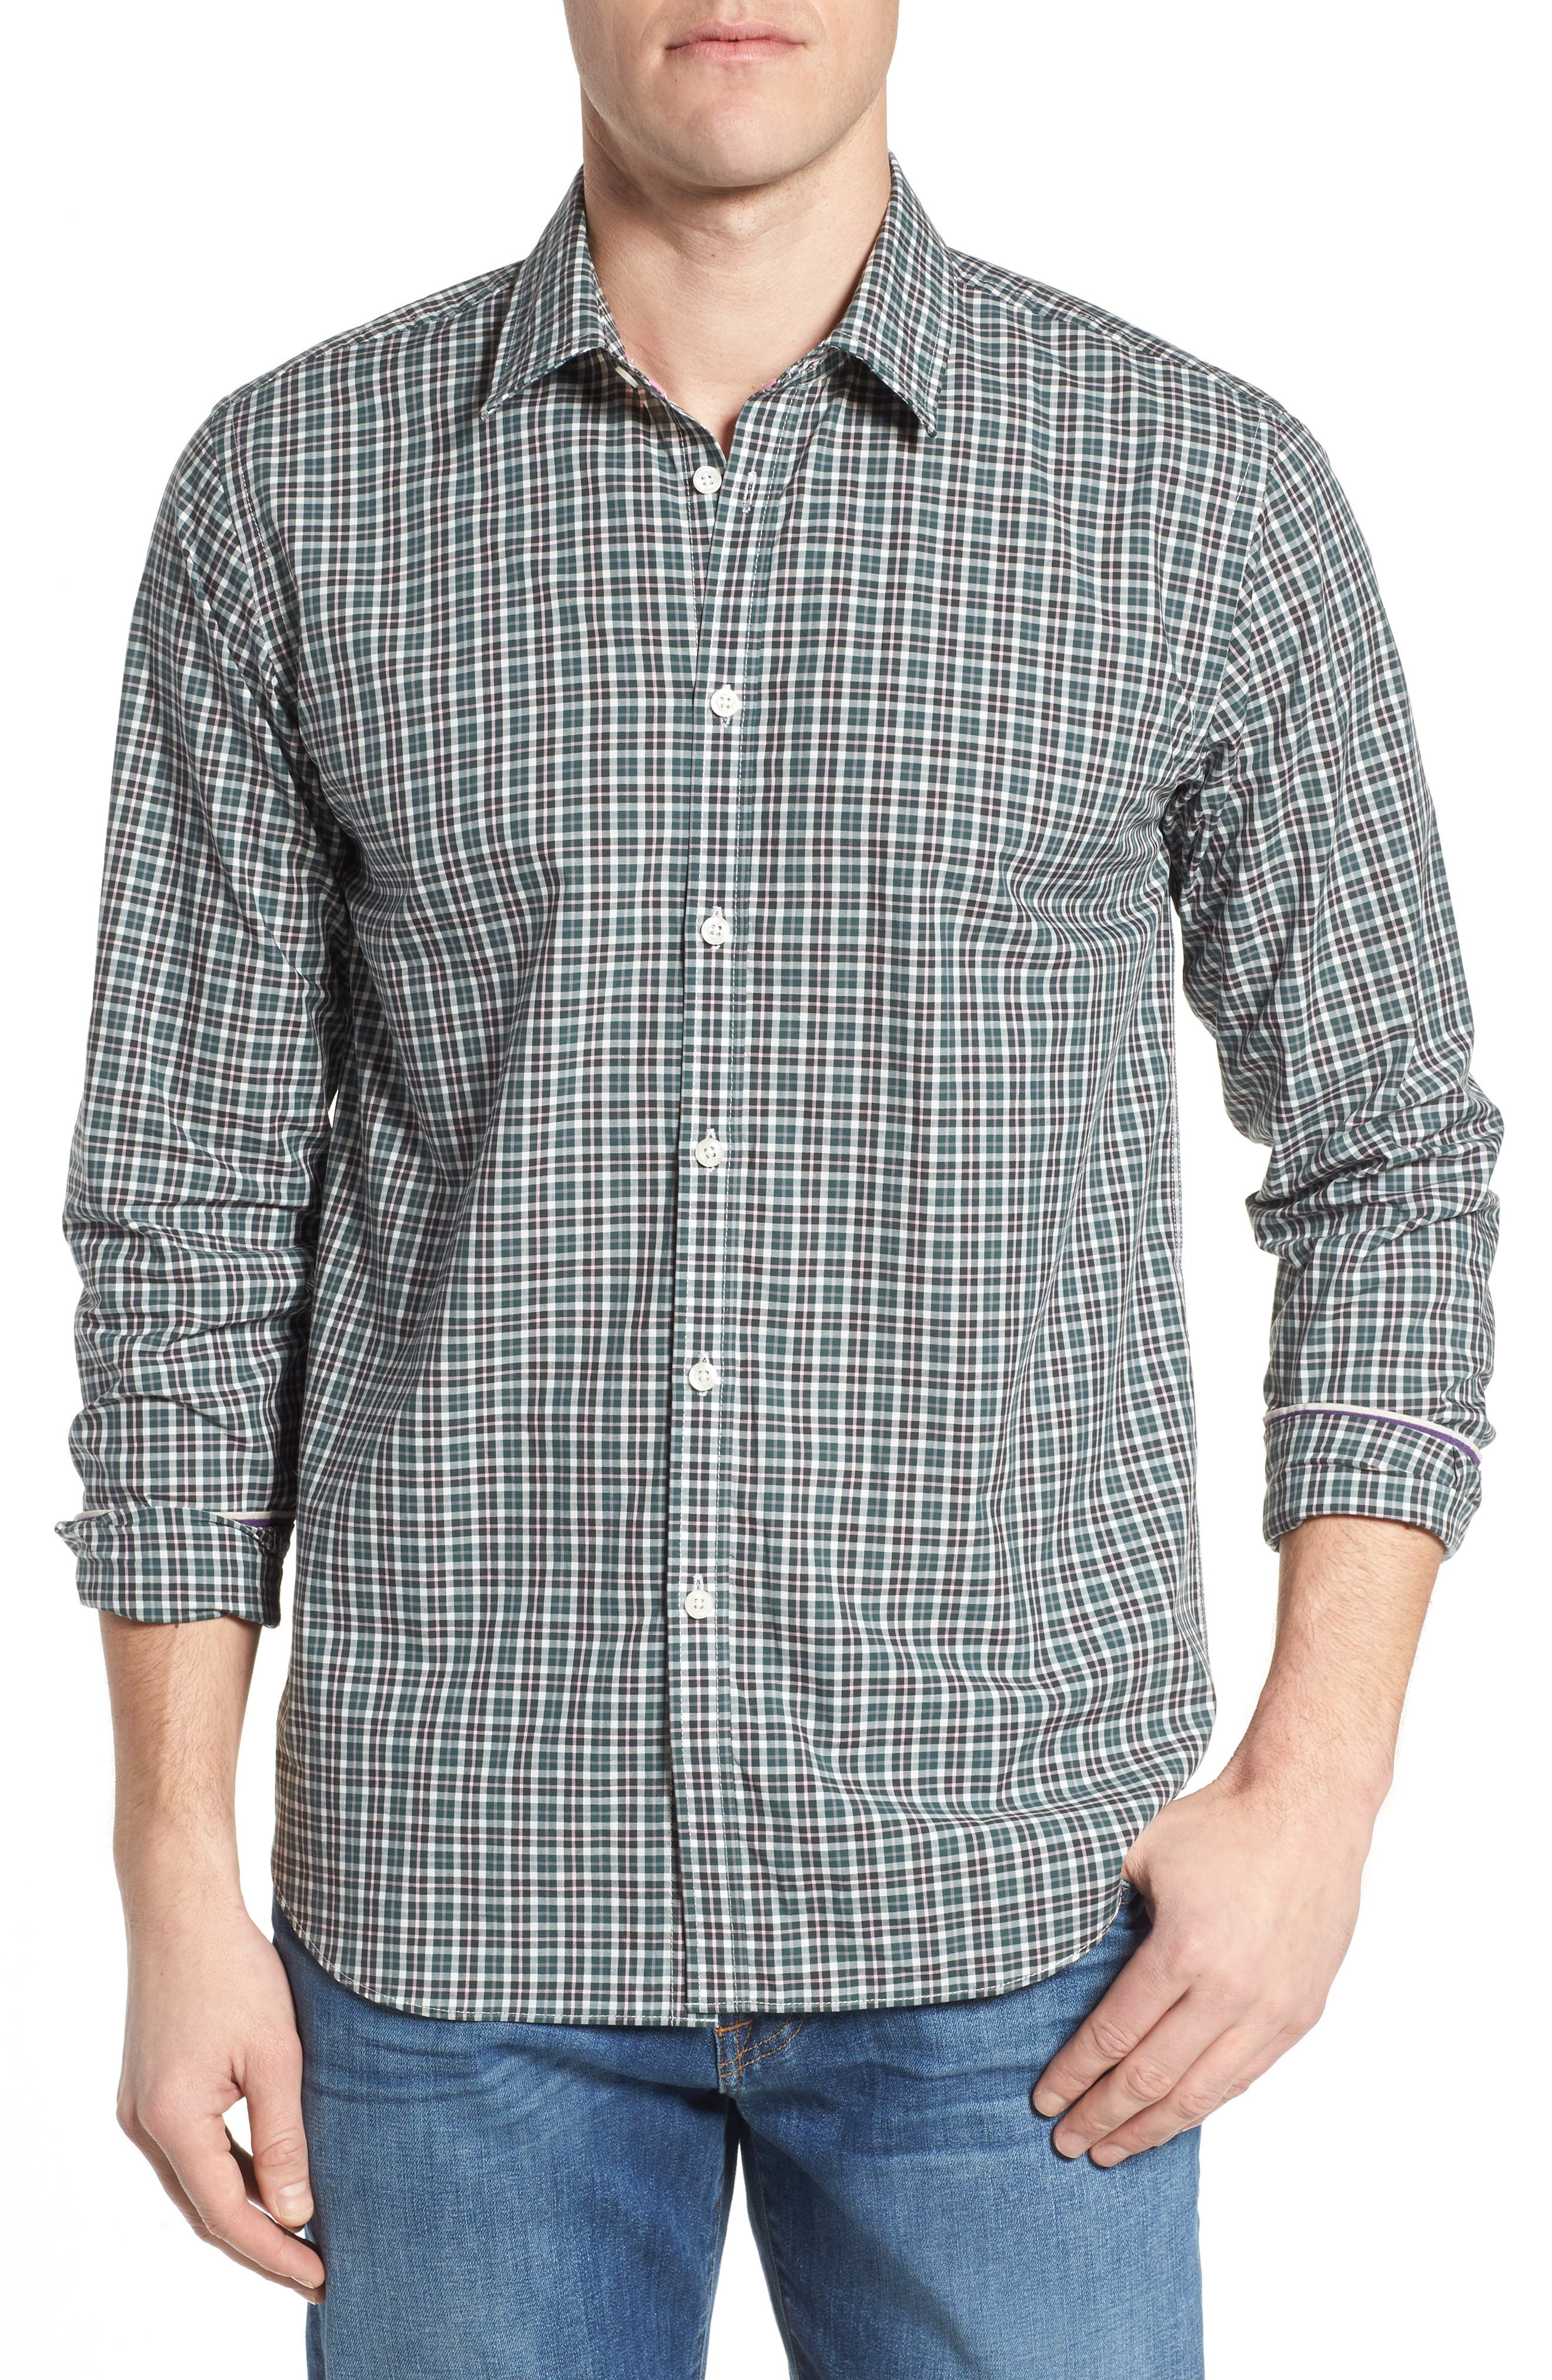 Jeremy Argyle Comfort Fit Plaid Sport Shirt